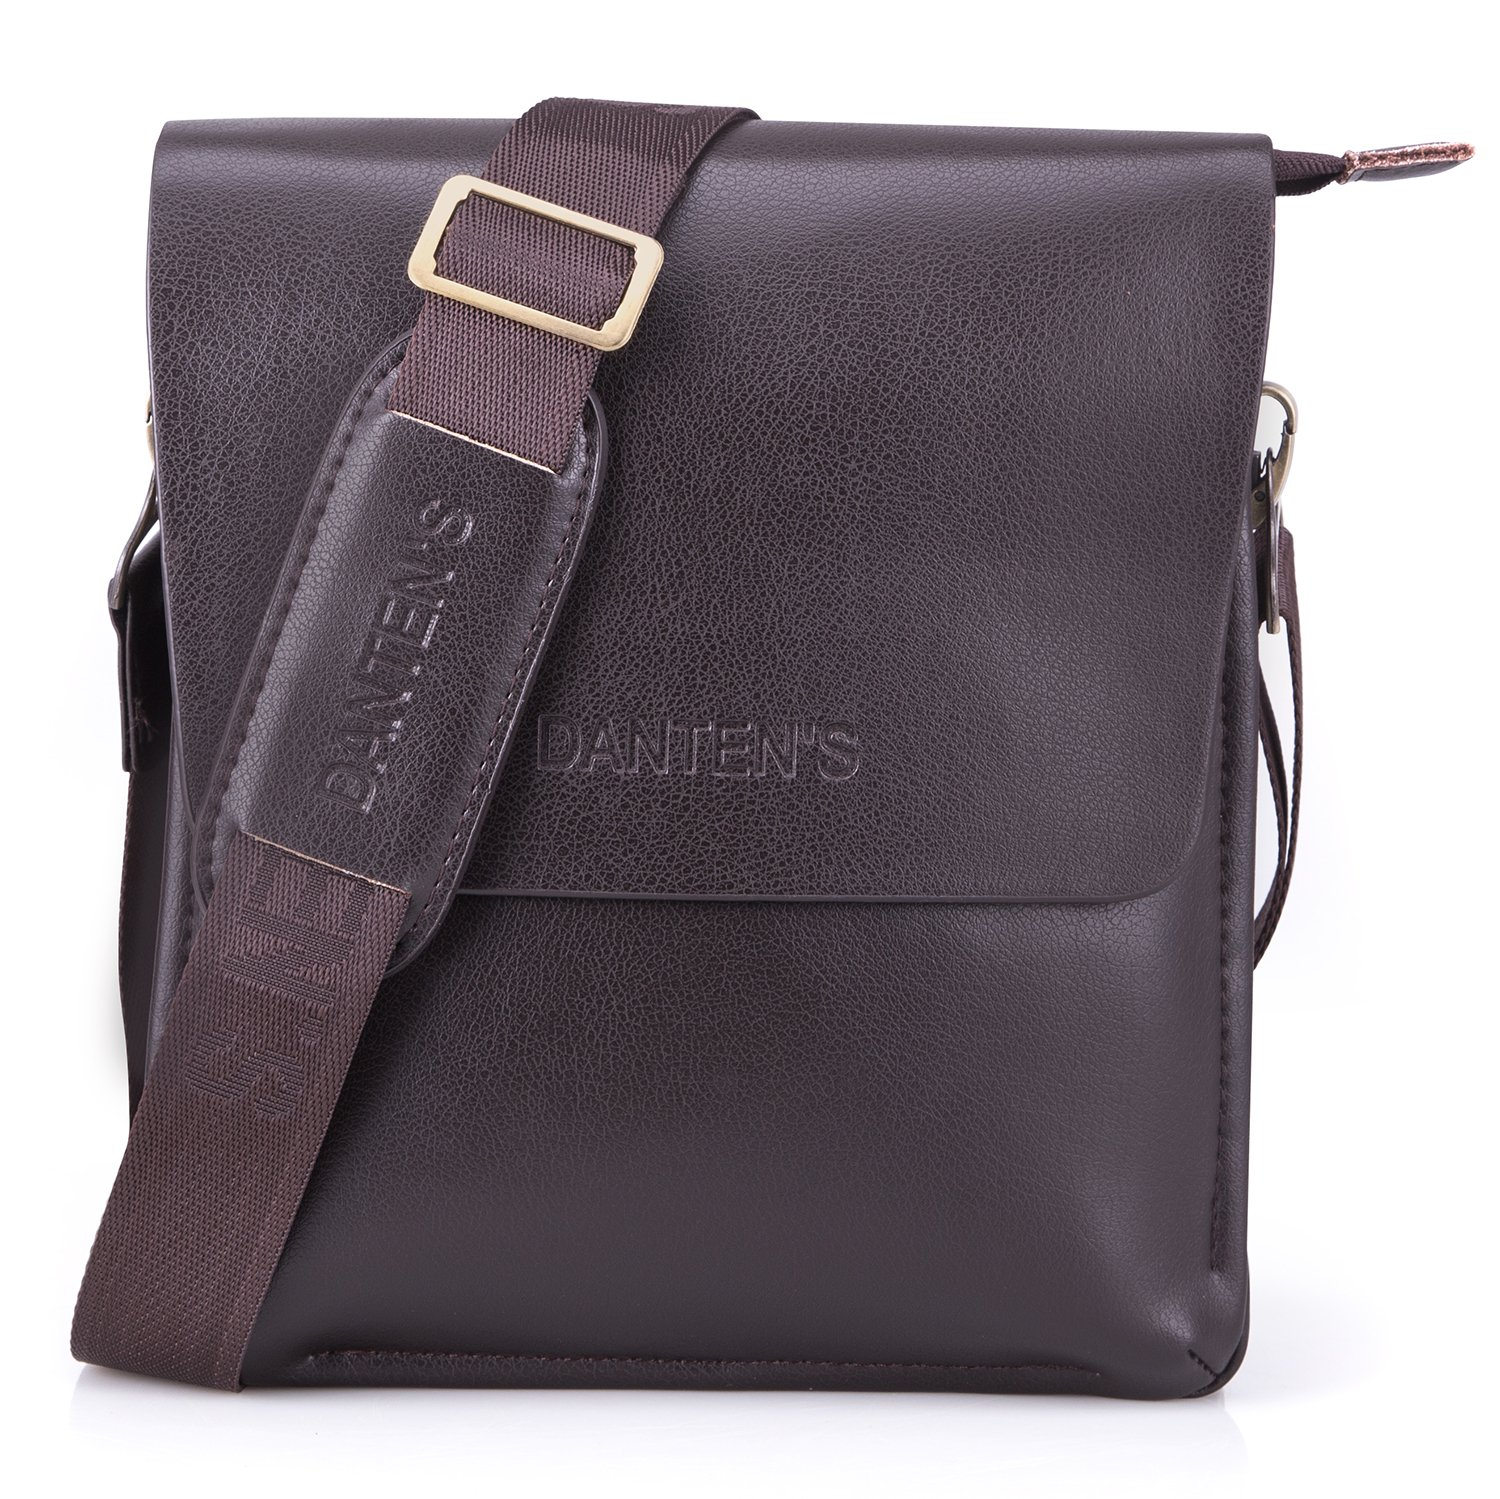 80%OFF Bienna Men Bags Crossbody Shoulder Bag Brown Genuine Leather  Business Messenger Bag for b33d7290586